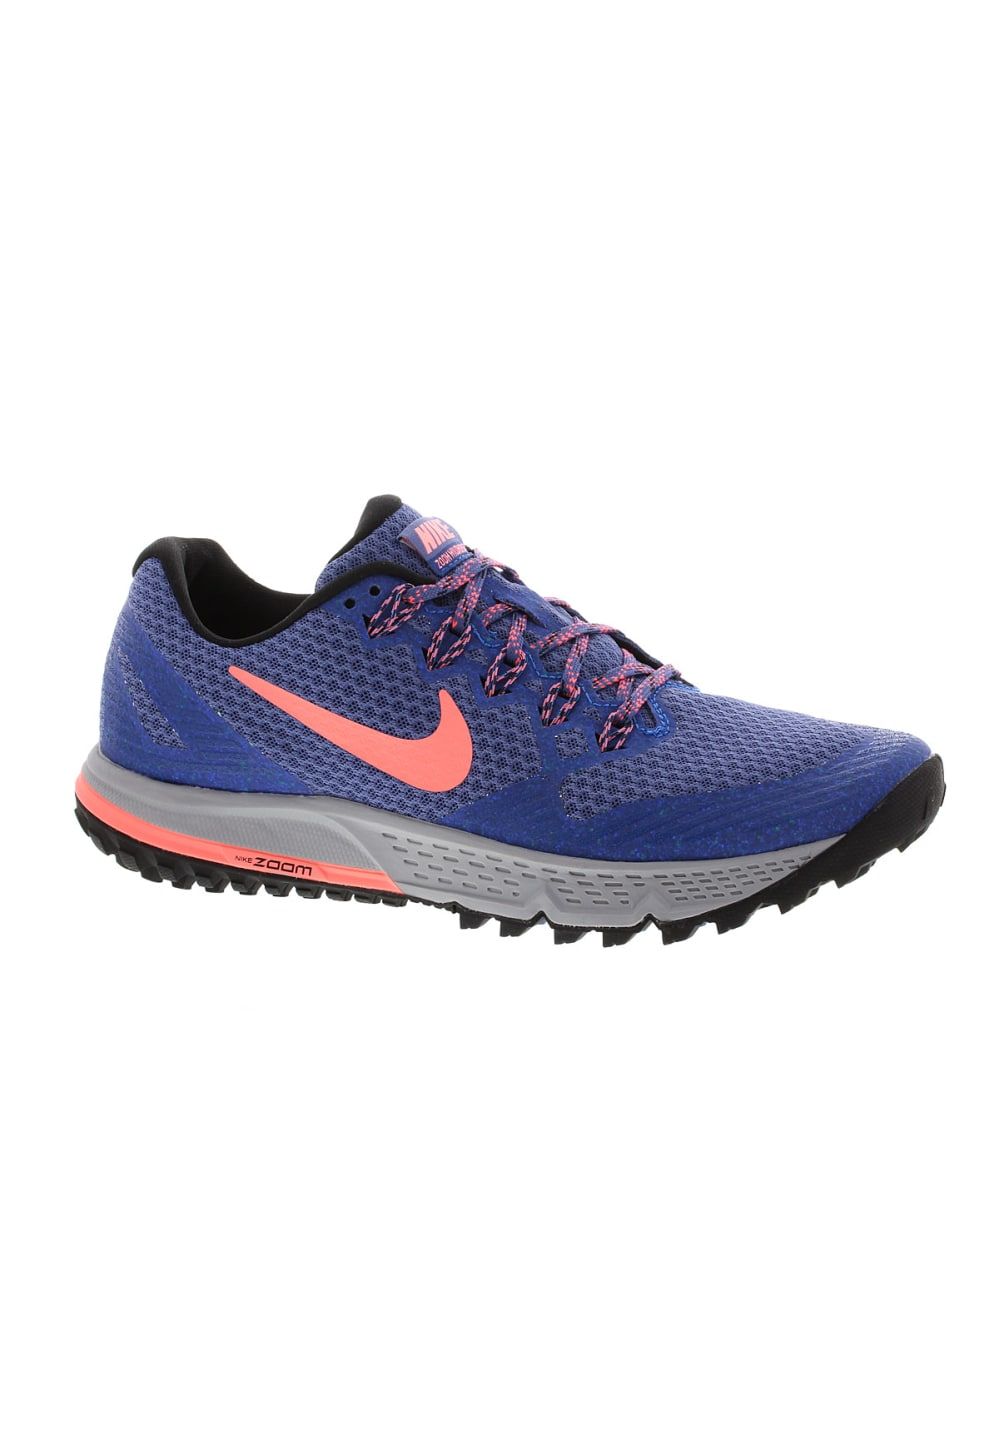 Nike Air Zoom Wildhorse 3 - Running shoes for Women - Blue  f83e57dd29